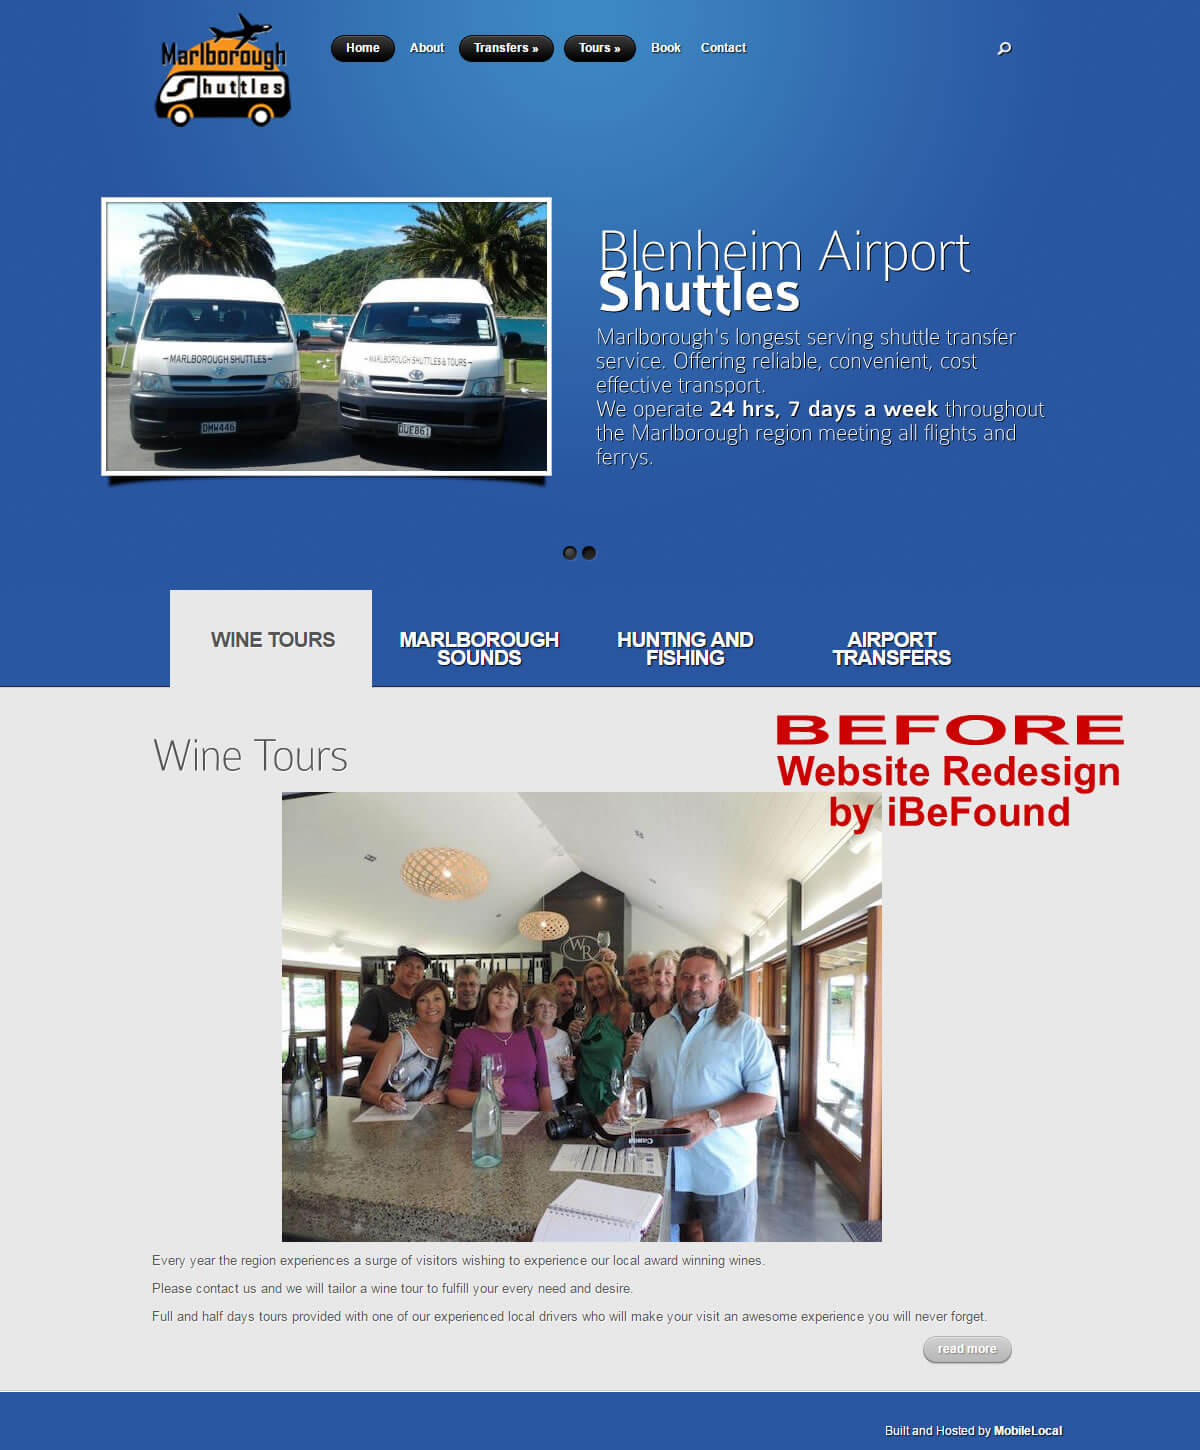 Homepage Of Marlborough Shuttles Before Website Redesign By iBeFound